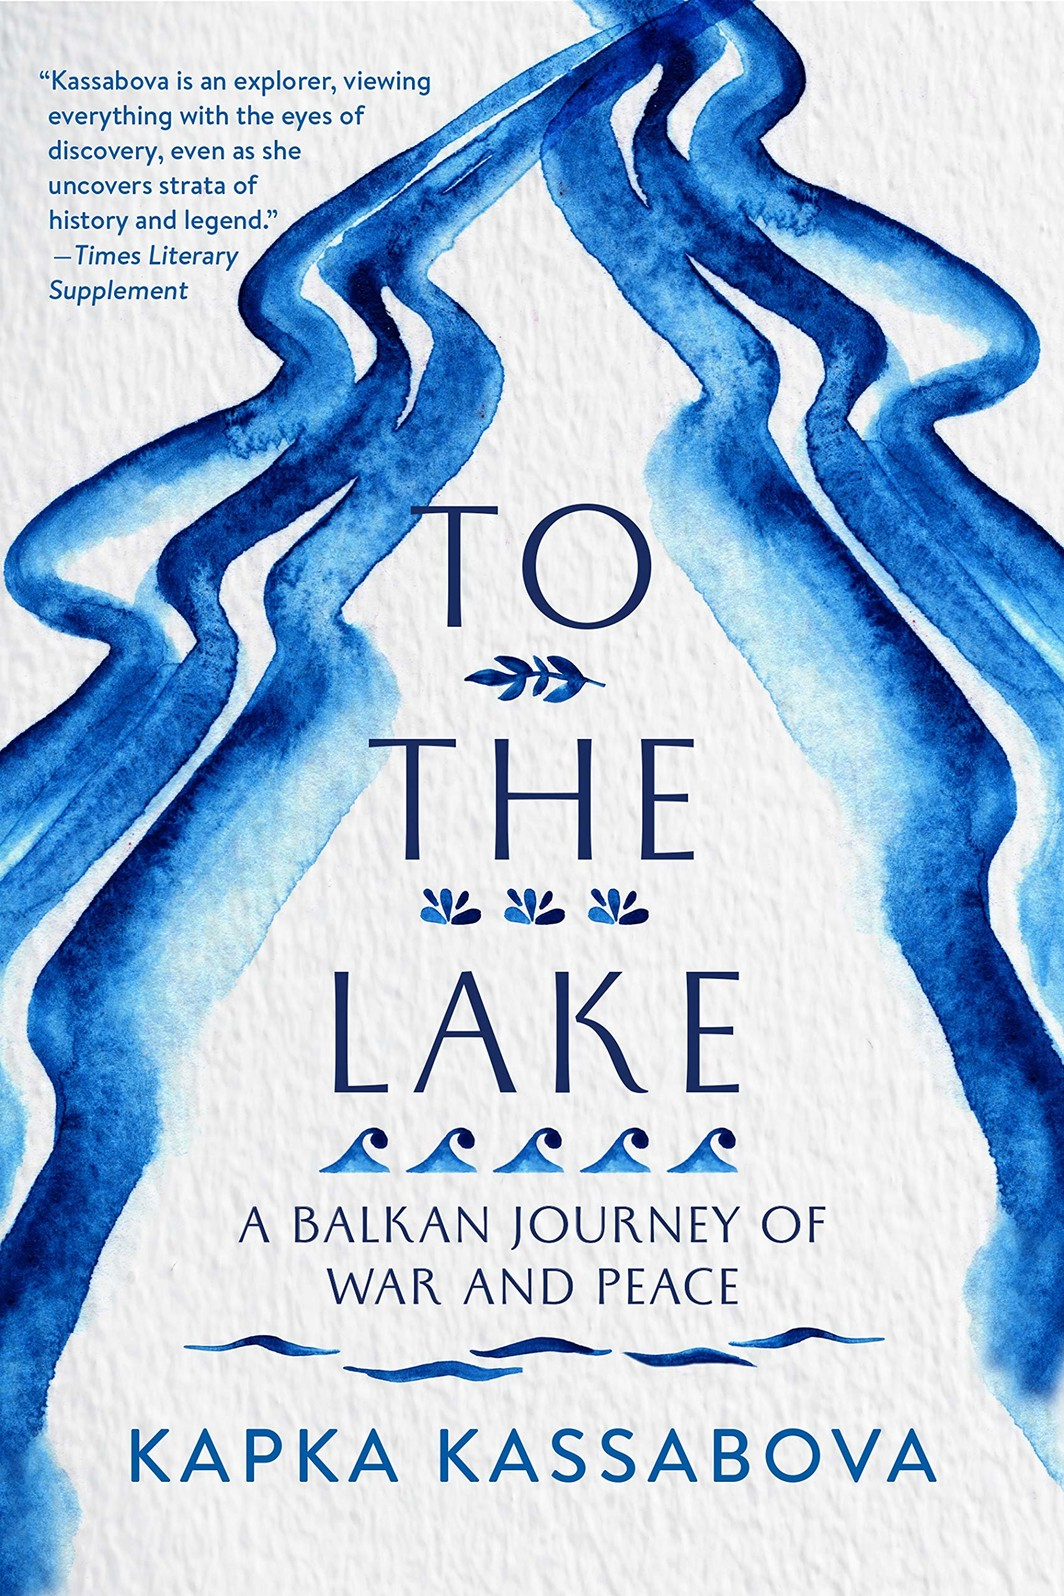 The cover of To the Lake: A Balkan Journey of War and Peace